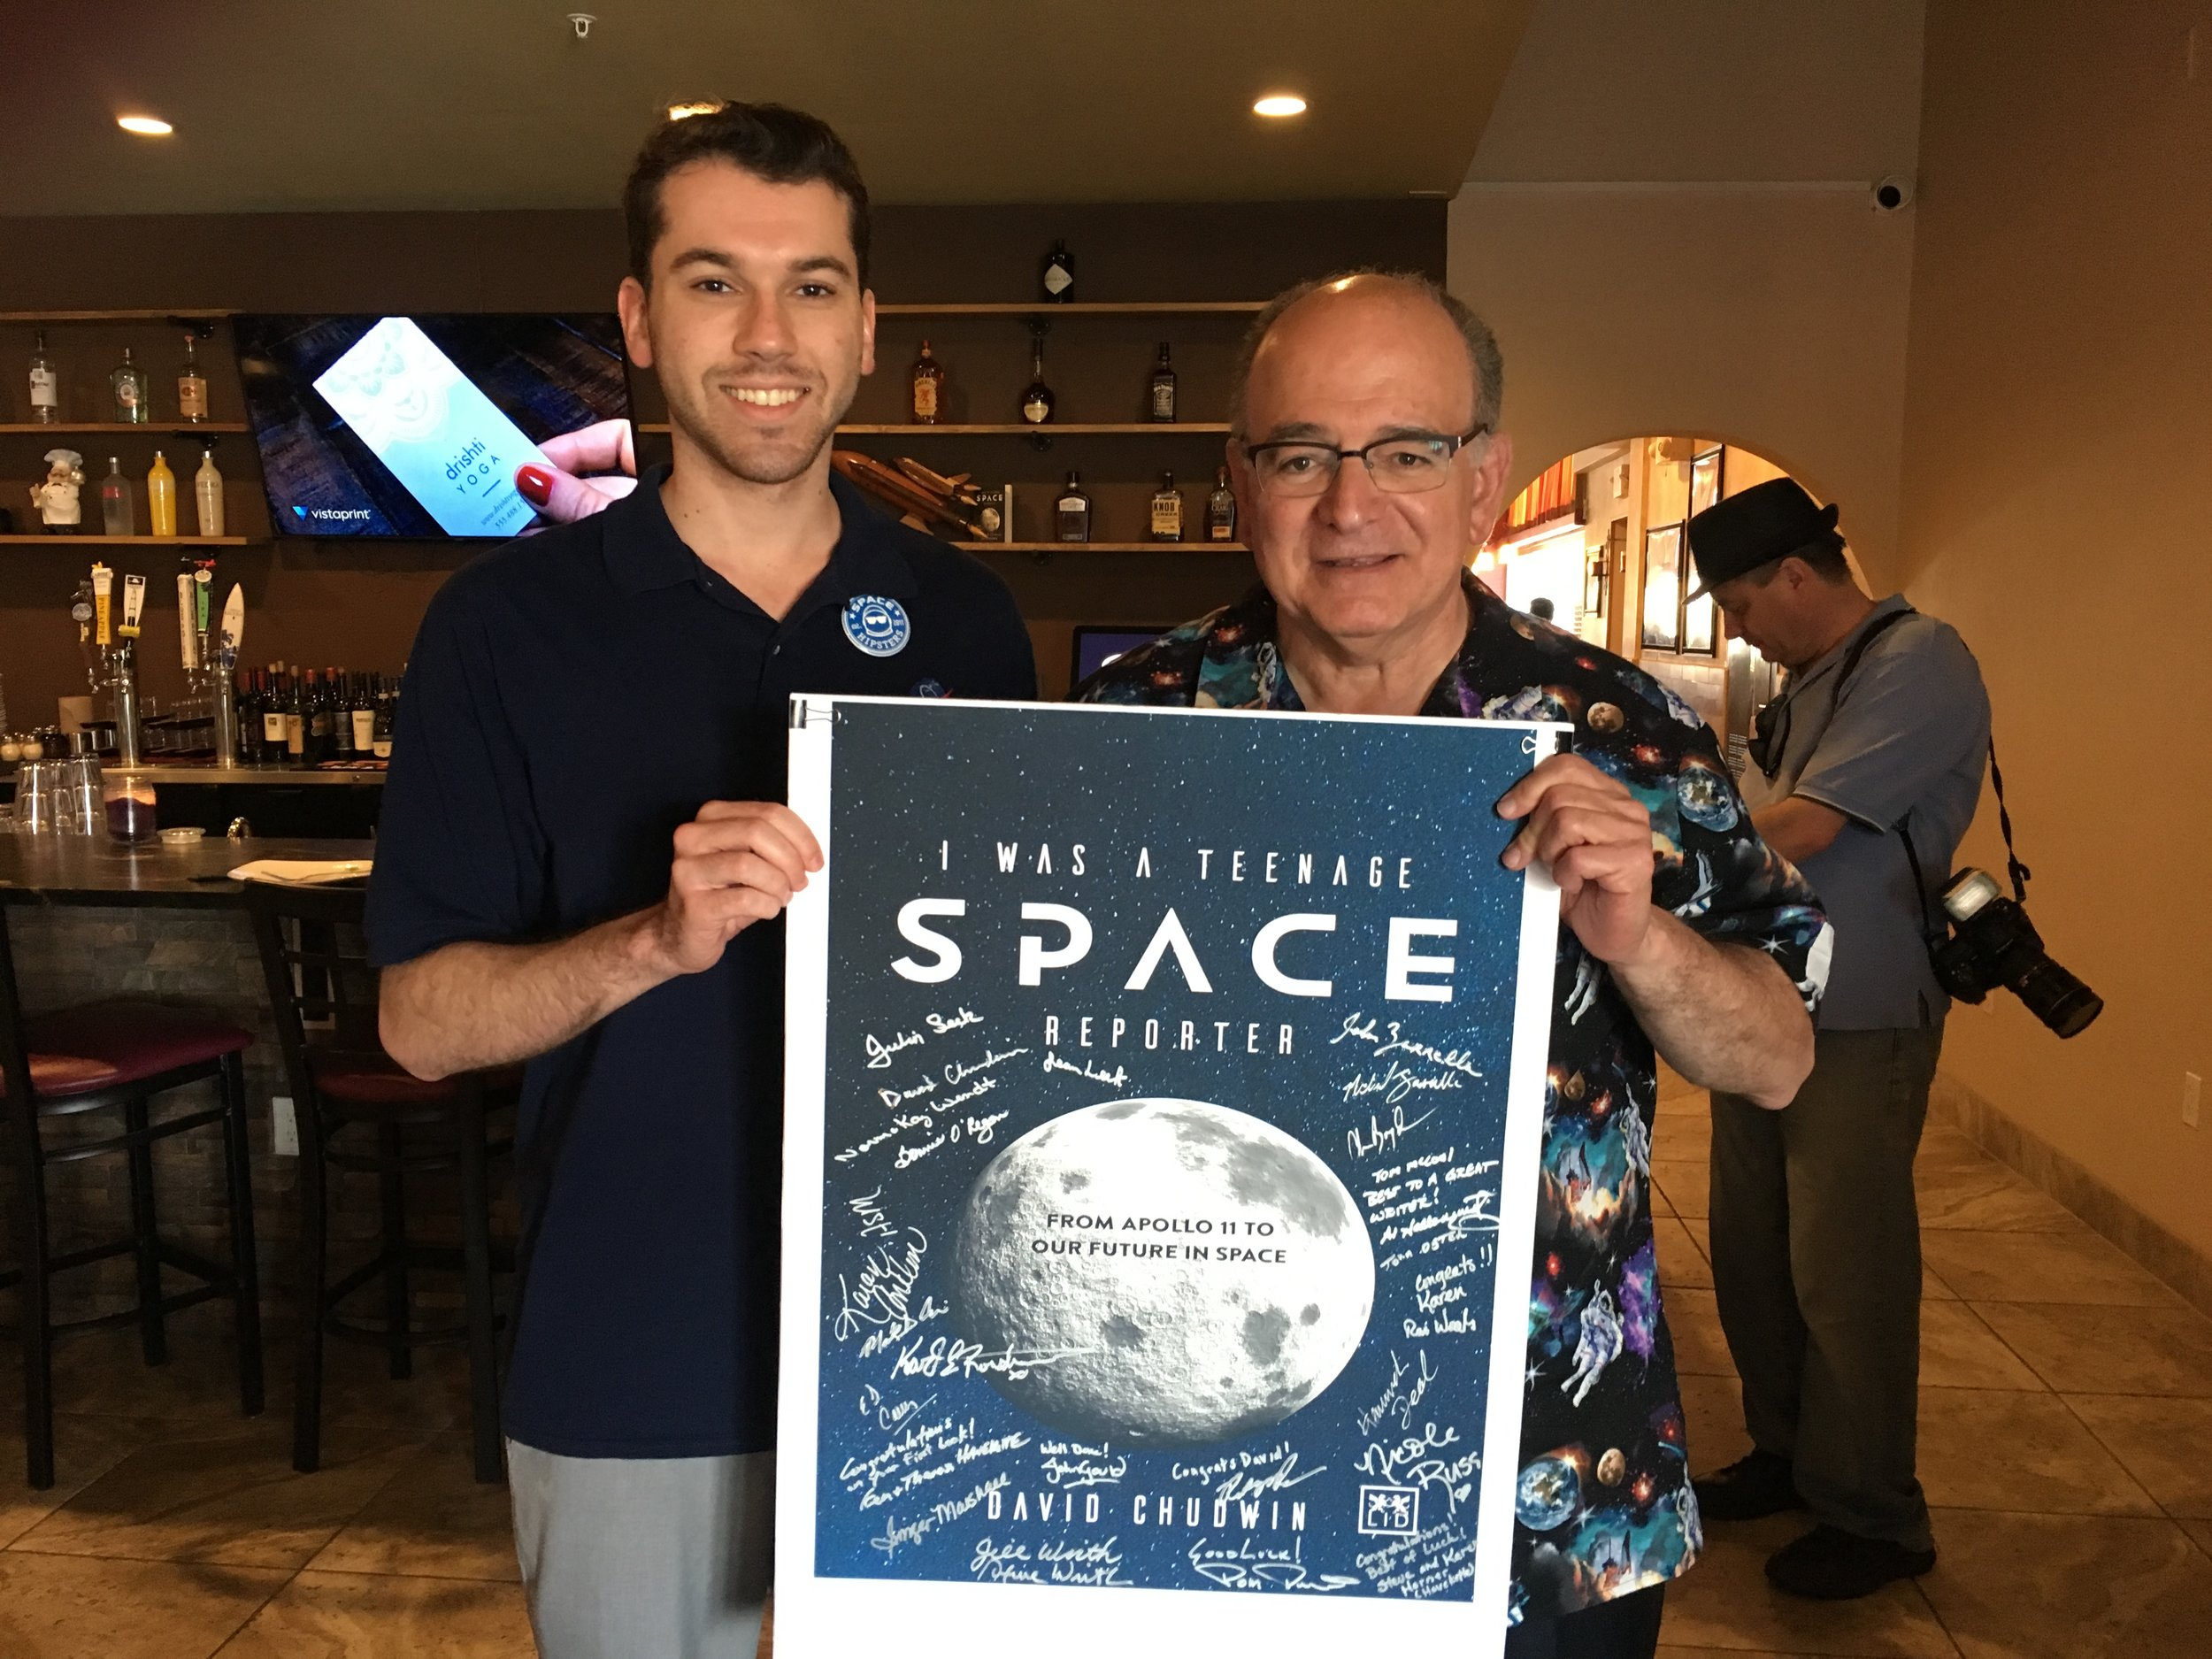 David Chudwin with the Author at the Space Coast book release party, attended by over a dozen spaceflight figures and friends at the famed restaurant, Zarrella's.